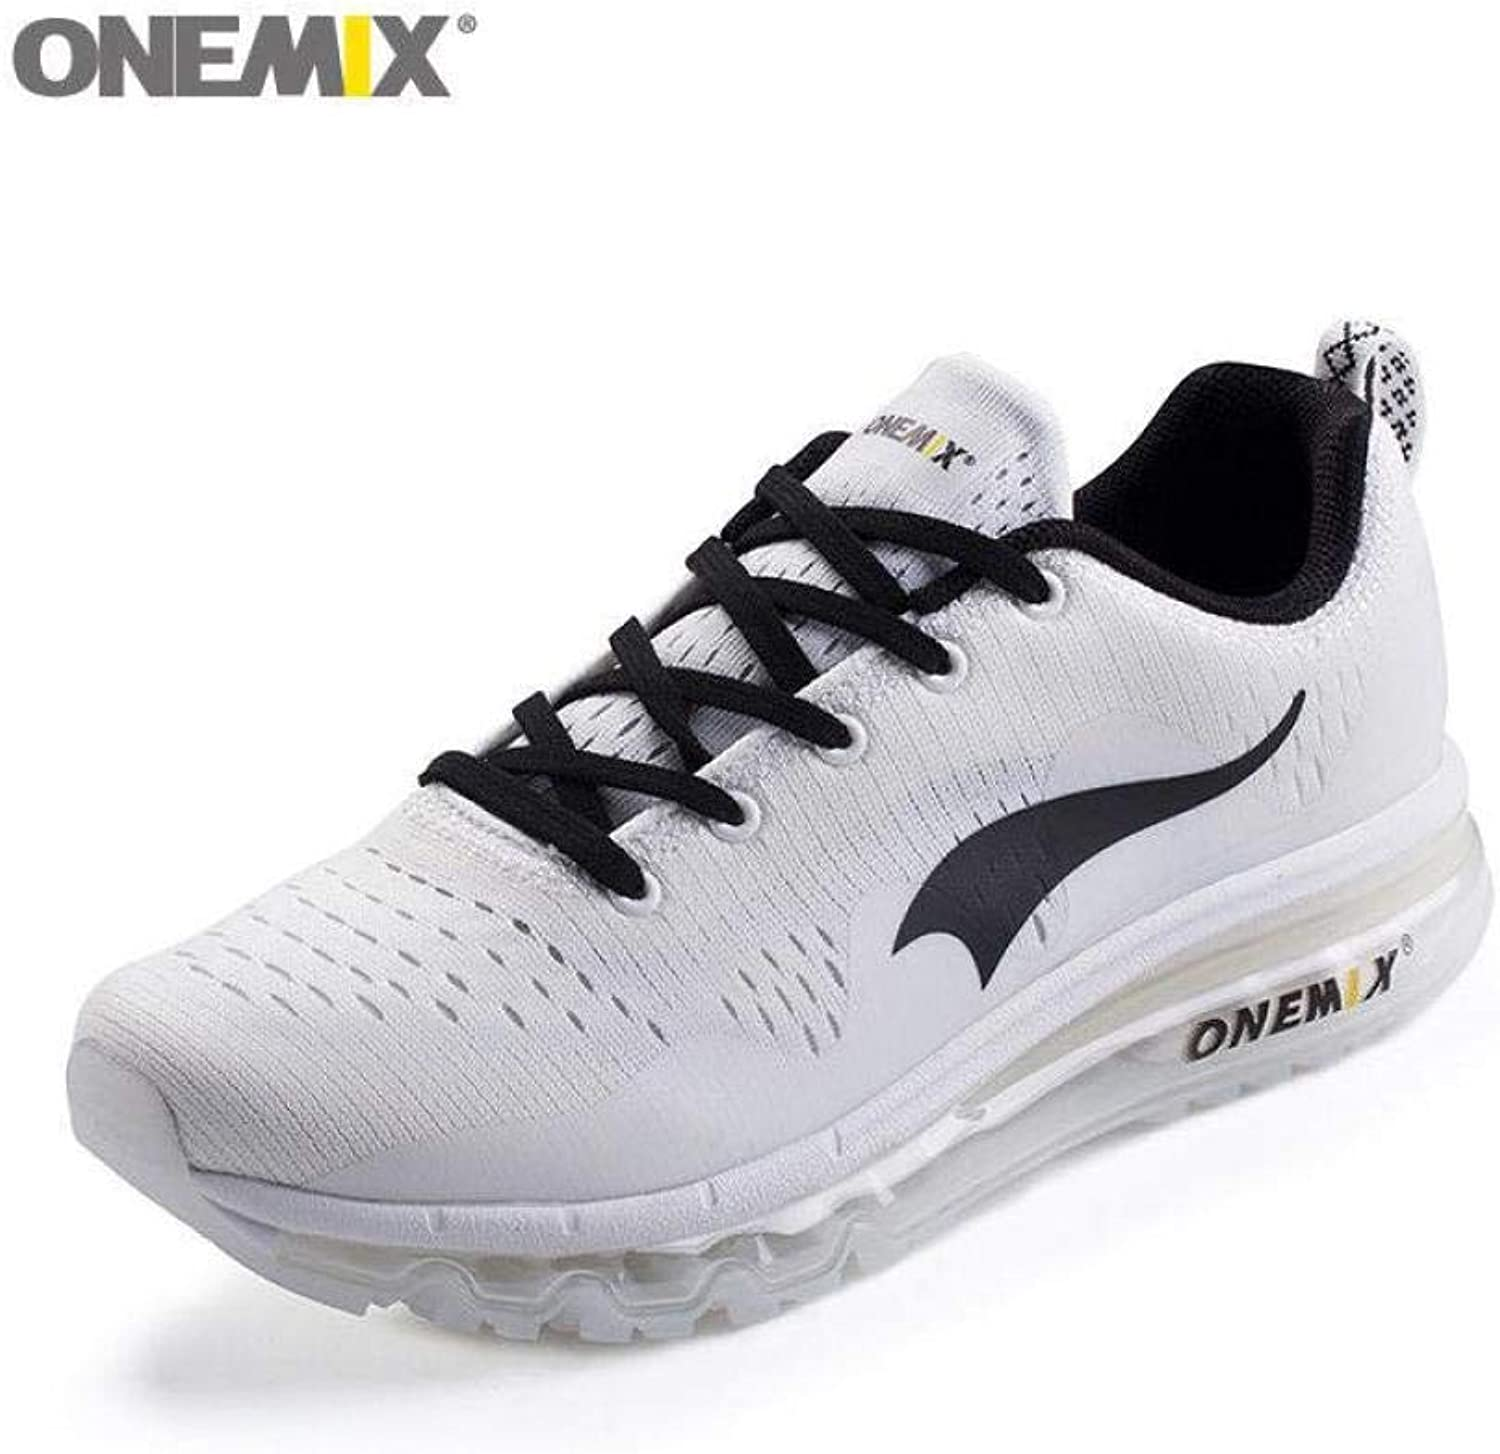 FidgetFidget Fashion Women's Smart Running shoes Athletic Sneakers Casual Gym Trainers Whit5.5 White